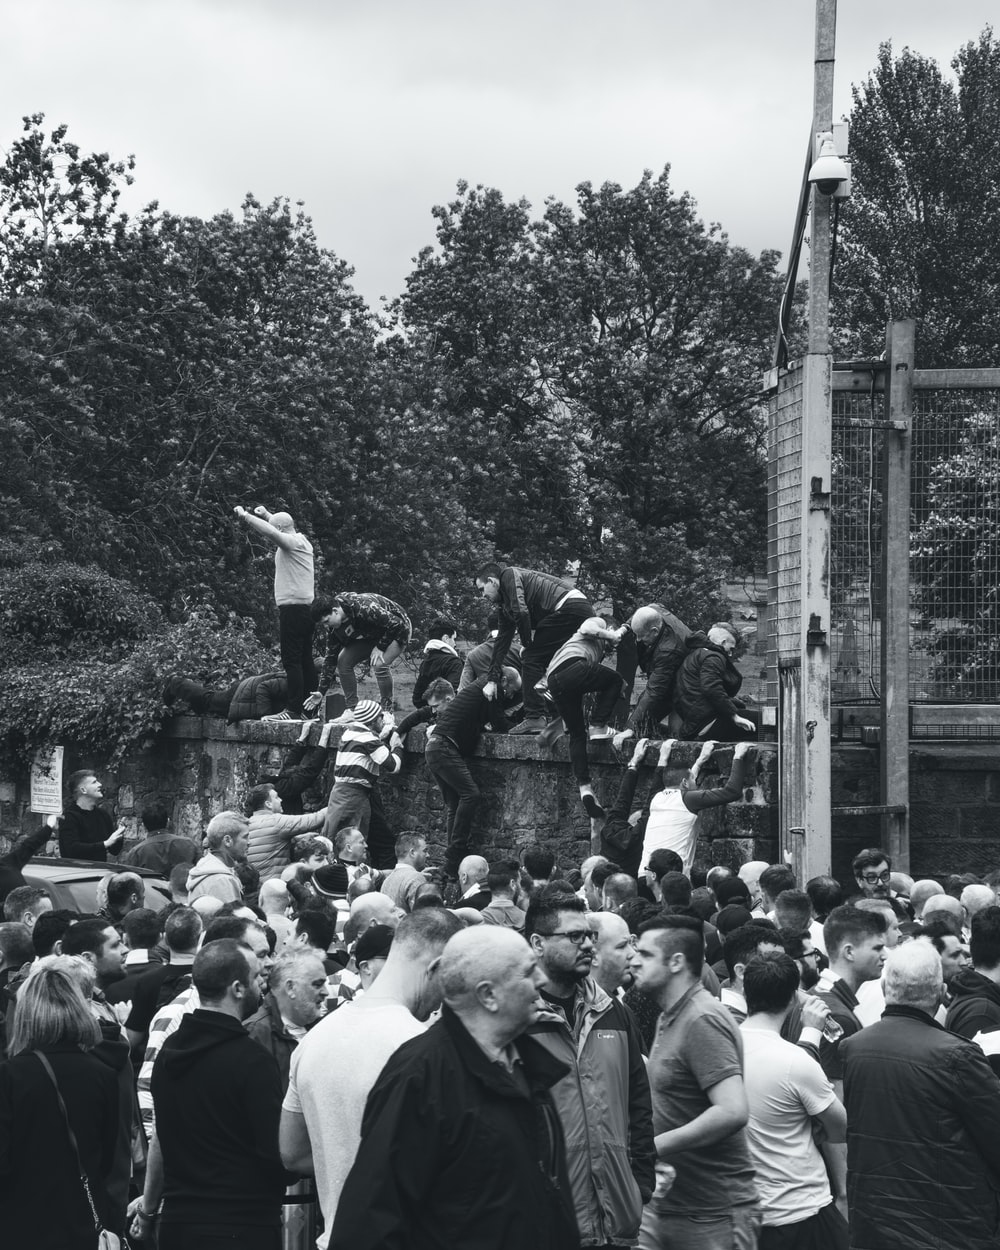 grayscale photography of people gathering